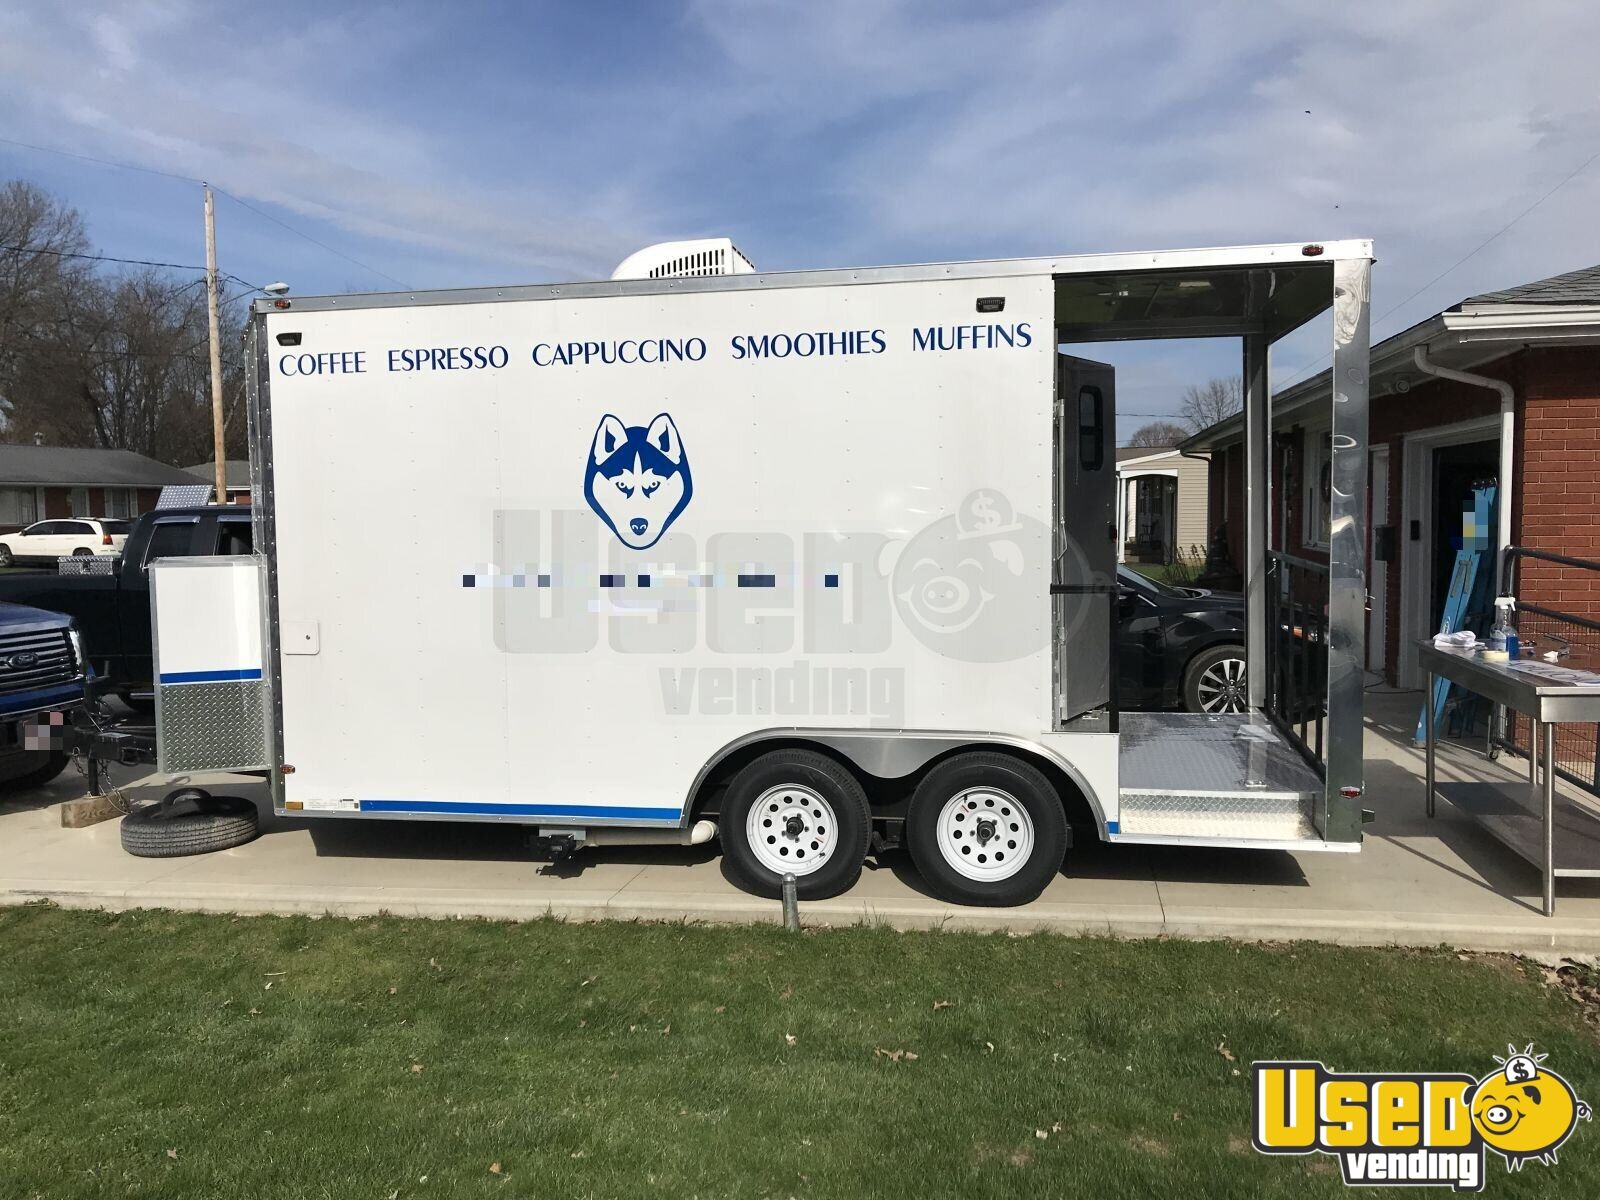 2018 Freedom Trailer Beverage - Coffee Trailer Cabinets Ohio for Sale - 5